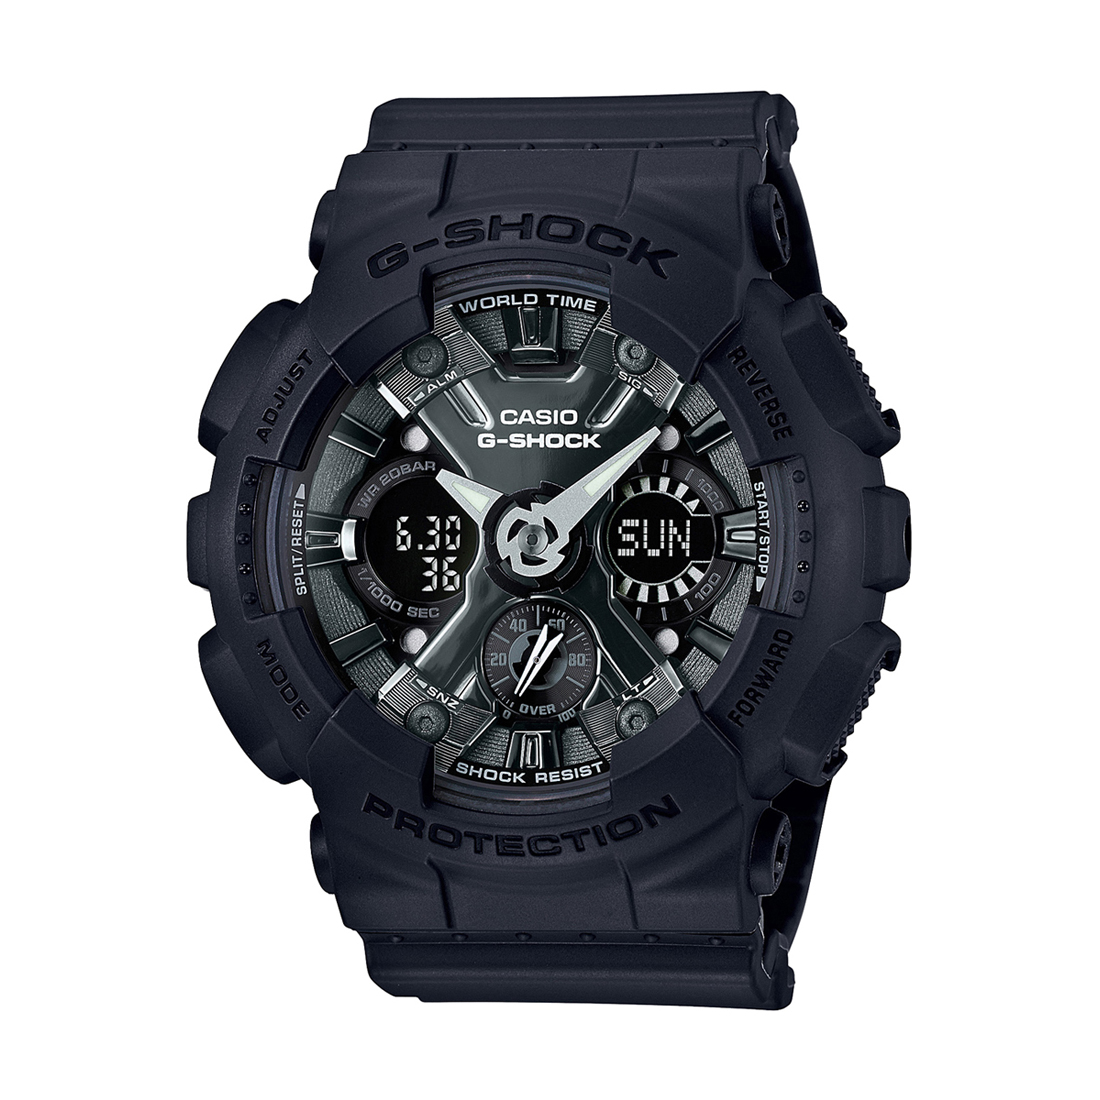 g730 gma-s120mf-1adr g-shock watch-G730